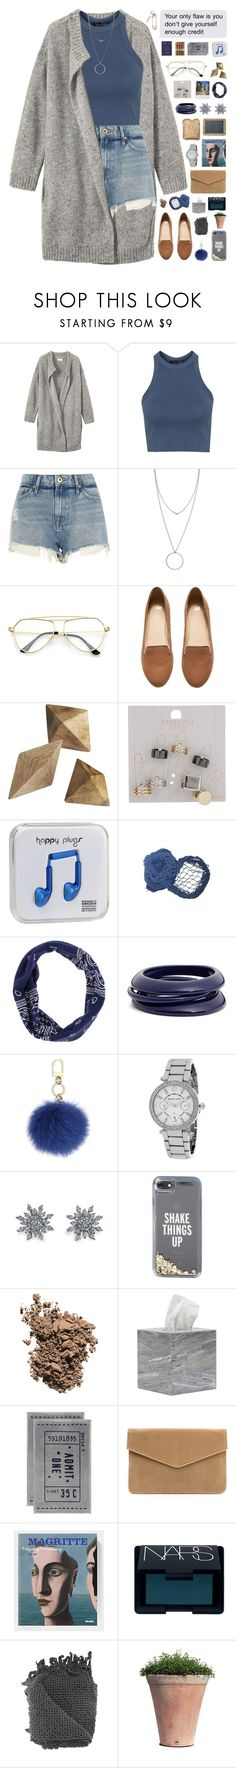 """""""Who am I?"""" by vip-beauty ❤ liked on Polyvore featuring Toast, Topshop, River Island, Botkier, H&M, CB2, Happy Plugs, Polaroid, Capelli New York and ZENZii"""